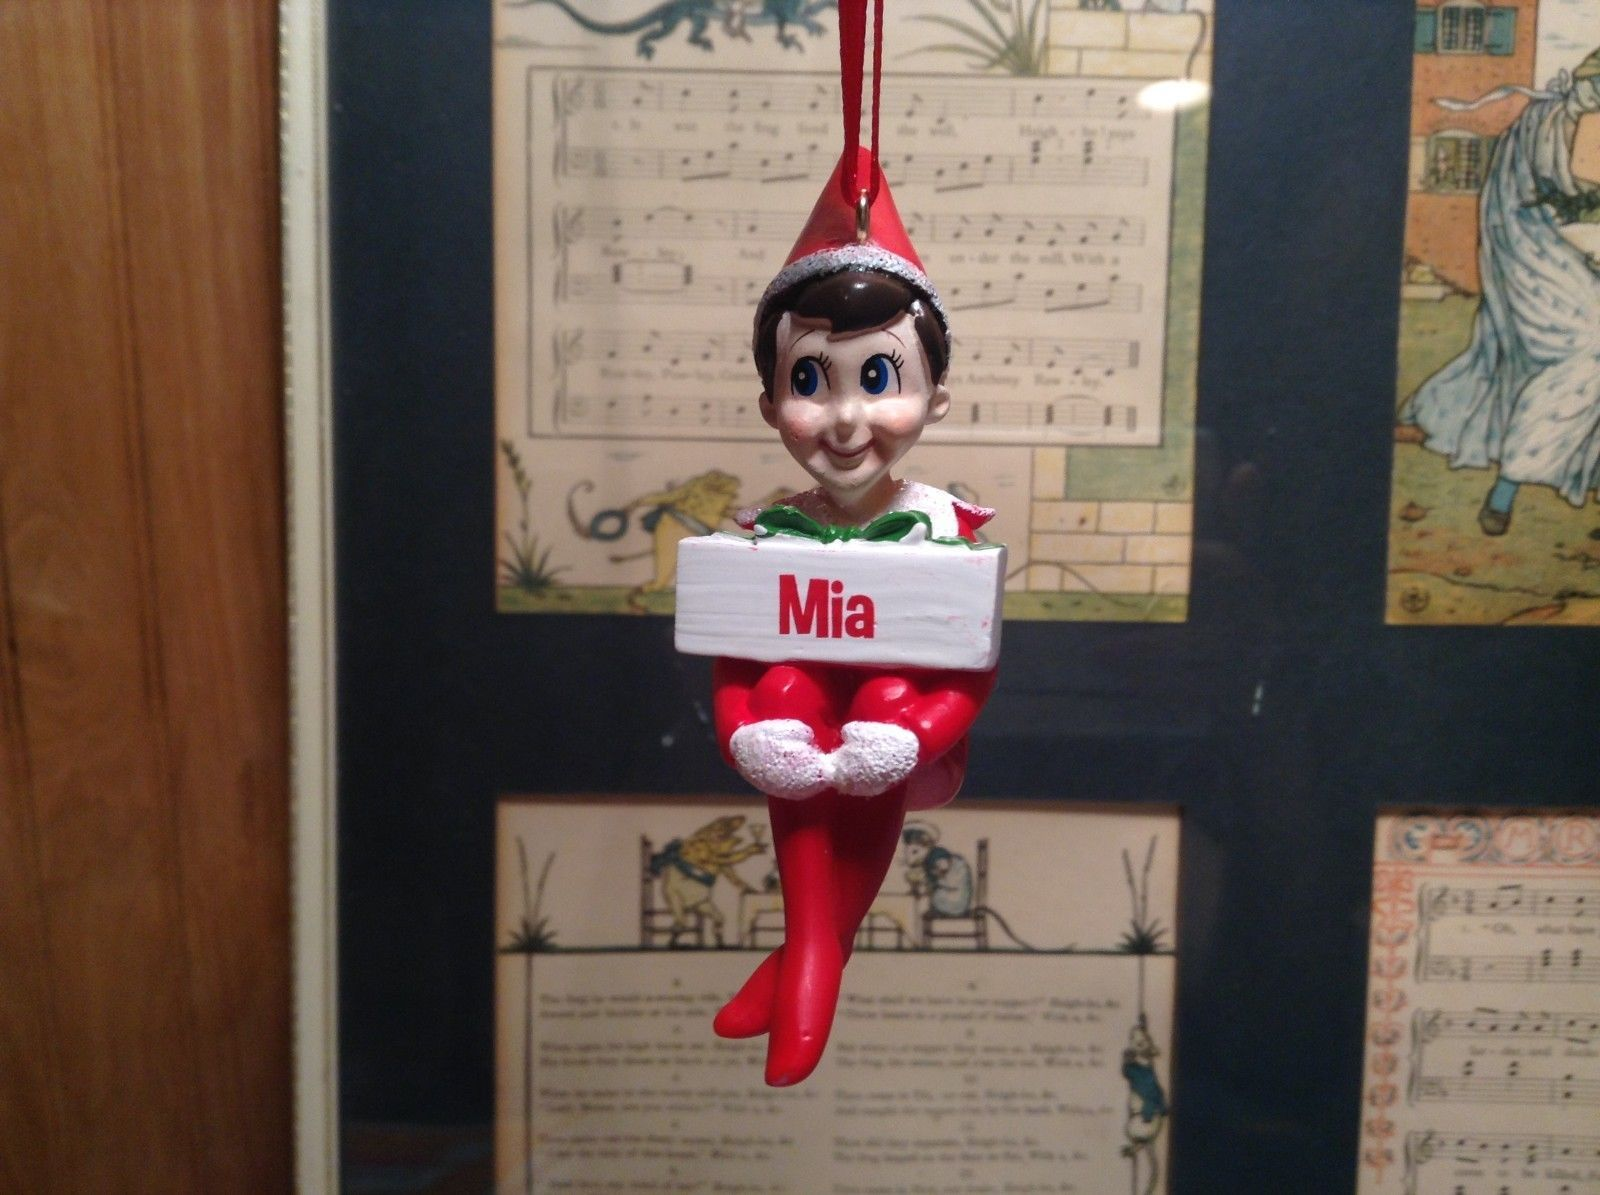 Dept 56 - Elf on the Shelf - Mia  banner Christmas Ornament